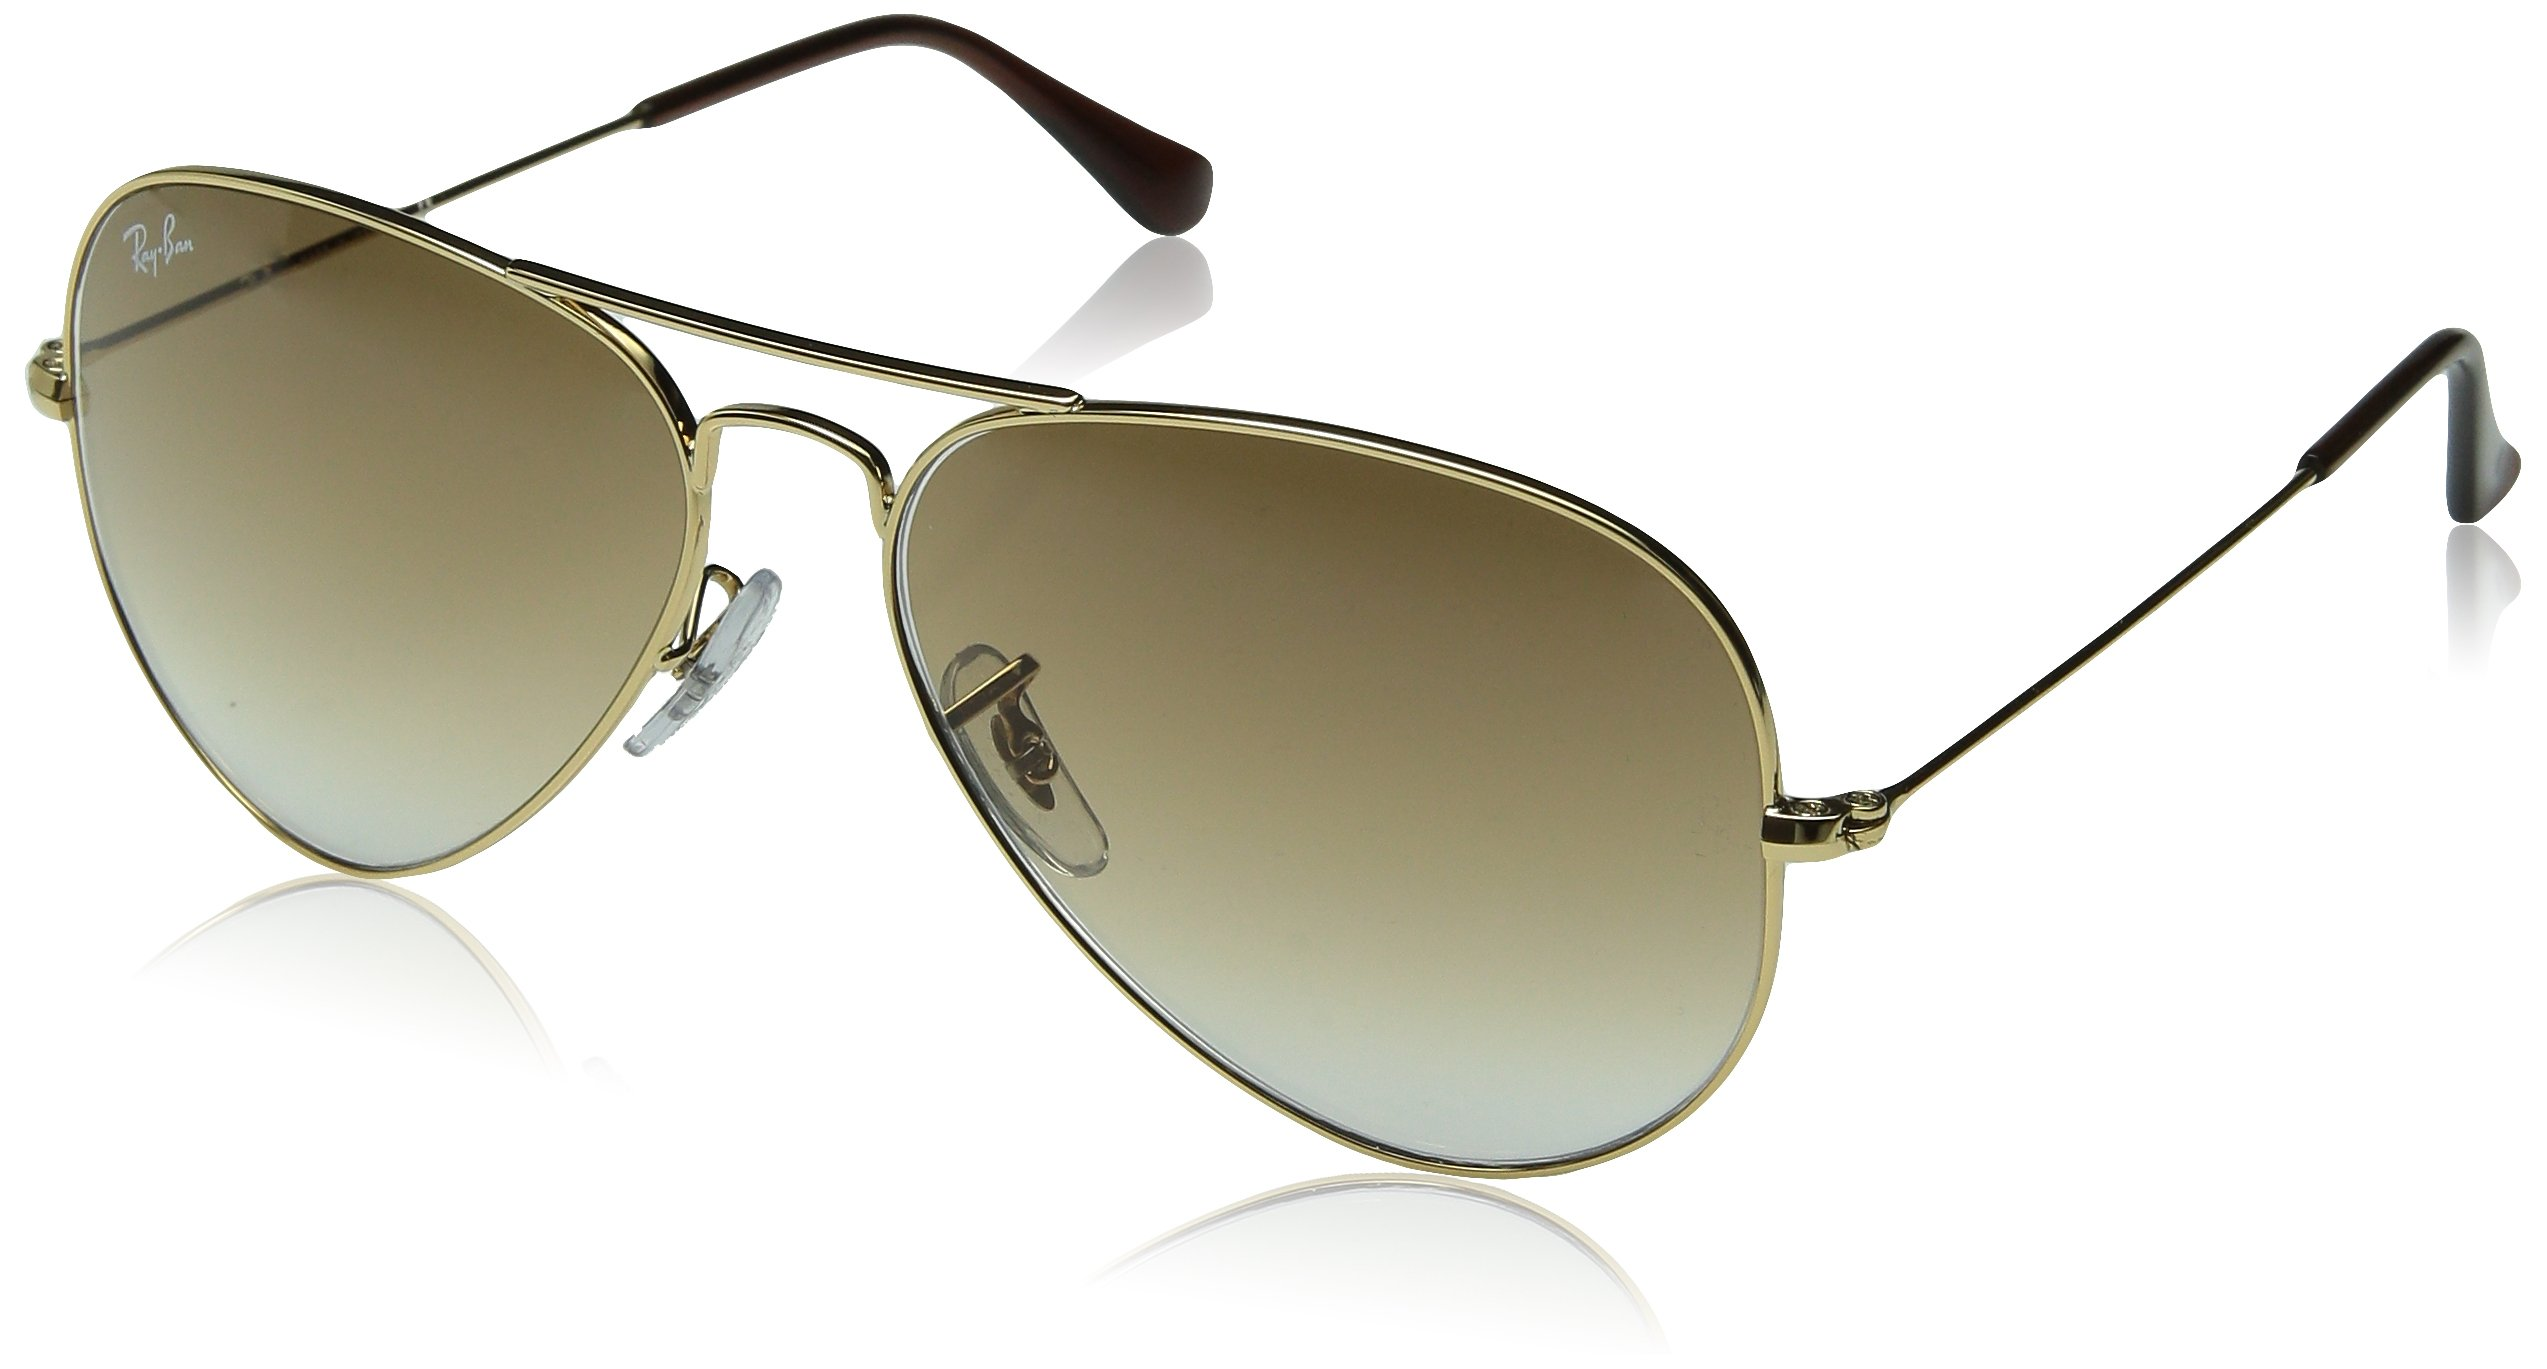 Rb3025 Aviator Sunglasses Gold Frame Crystal Gradient Bl : Galleon - Ray-Ban RB3025 Aviator Large Metal Non-Polarized ...